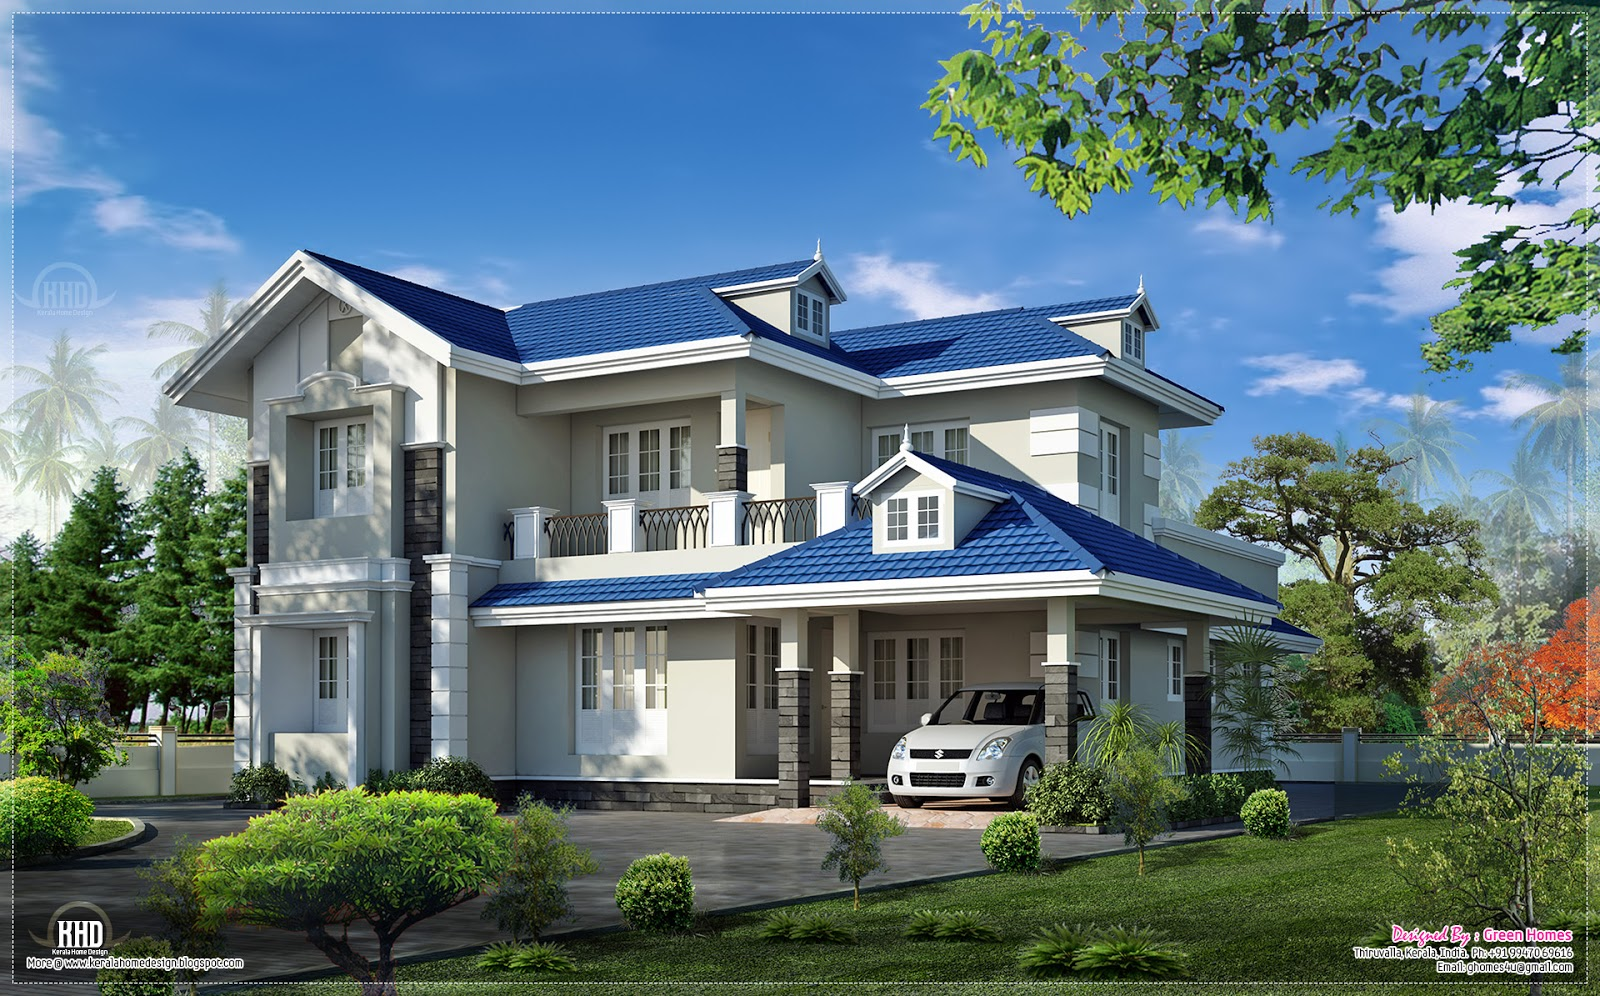 Beautiful 4 bedroom villa exterior house design plans for Ecological home